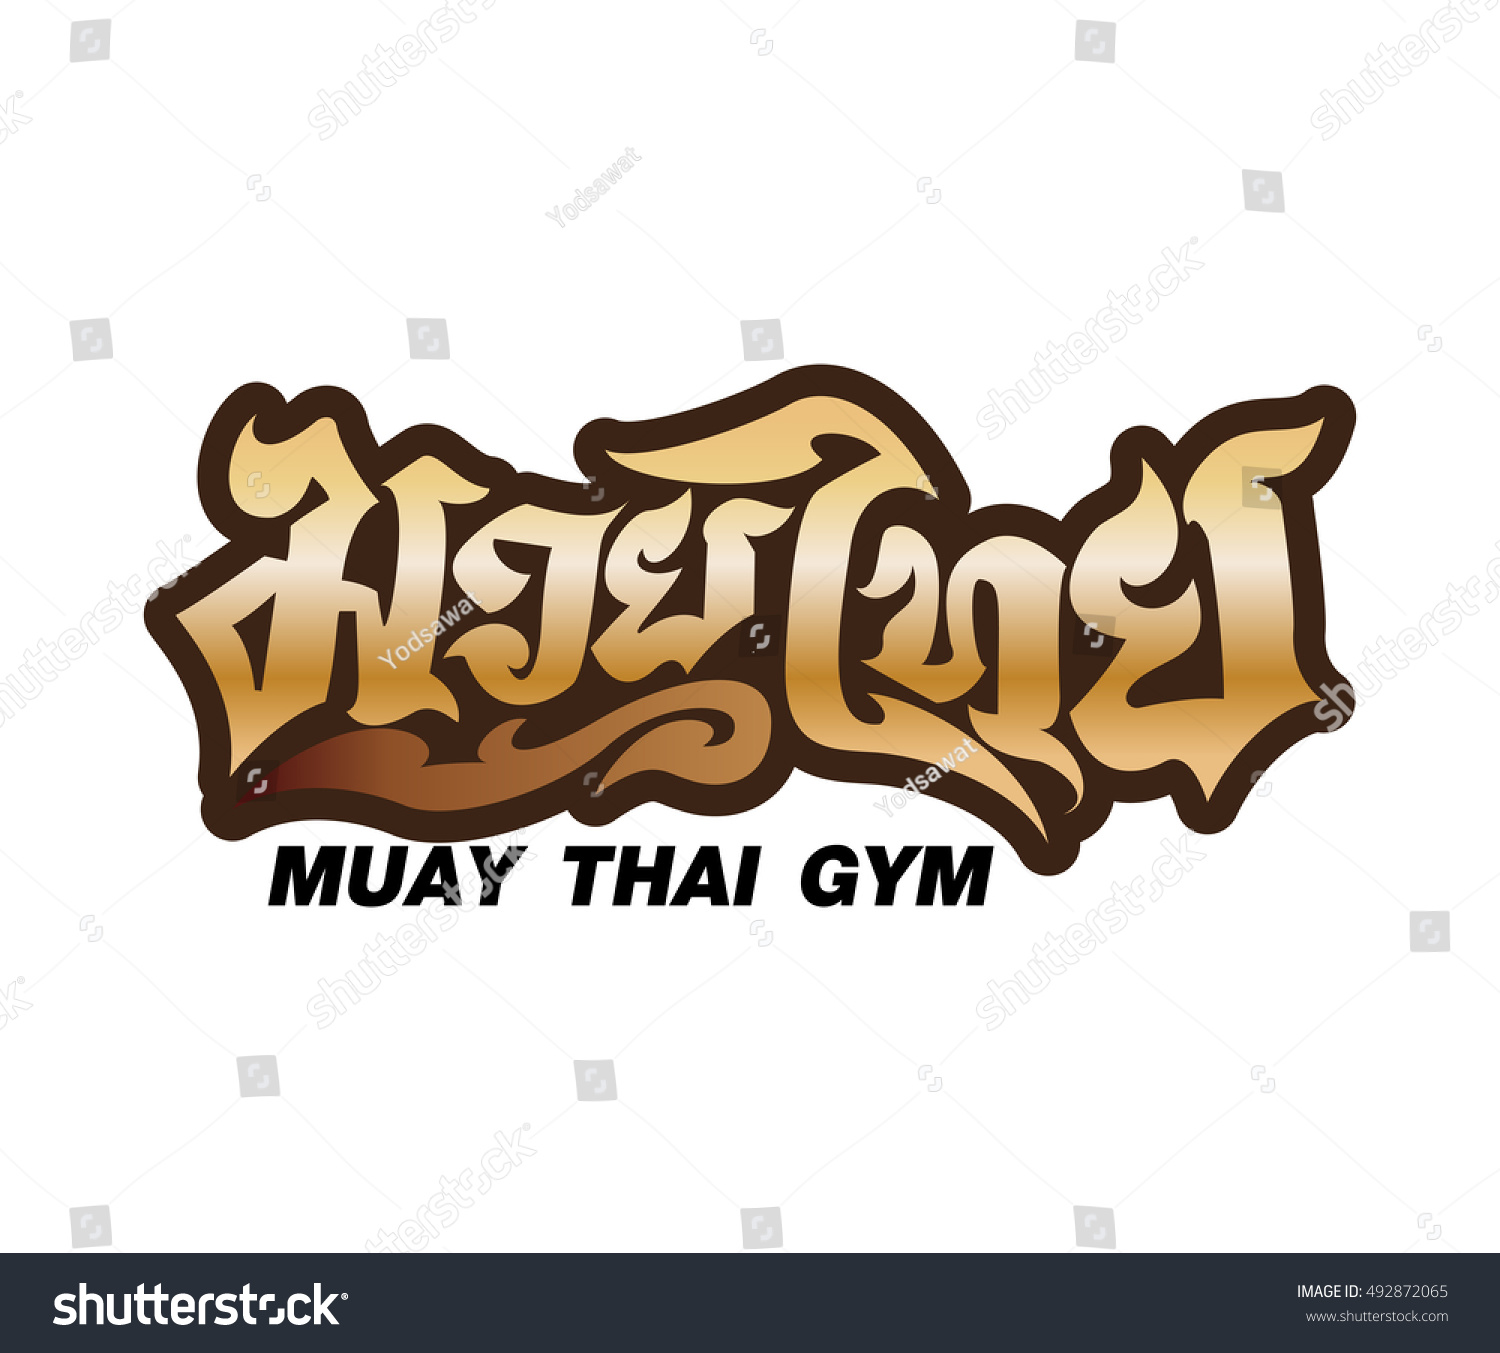 Muay thai in thai writing